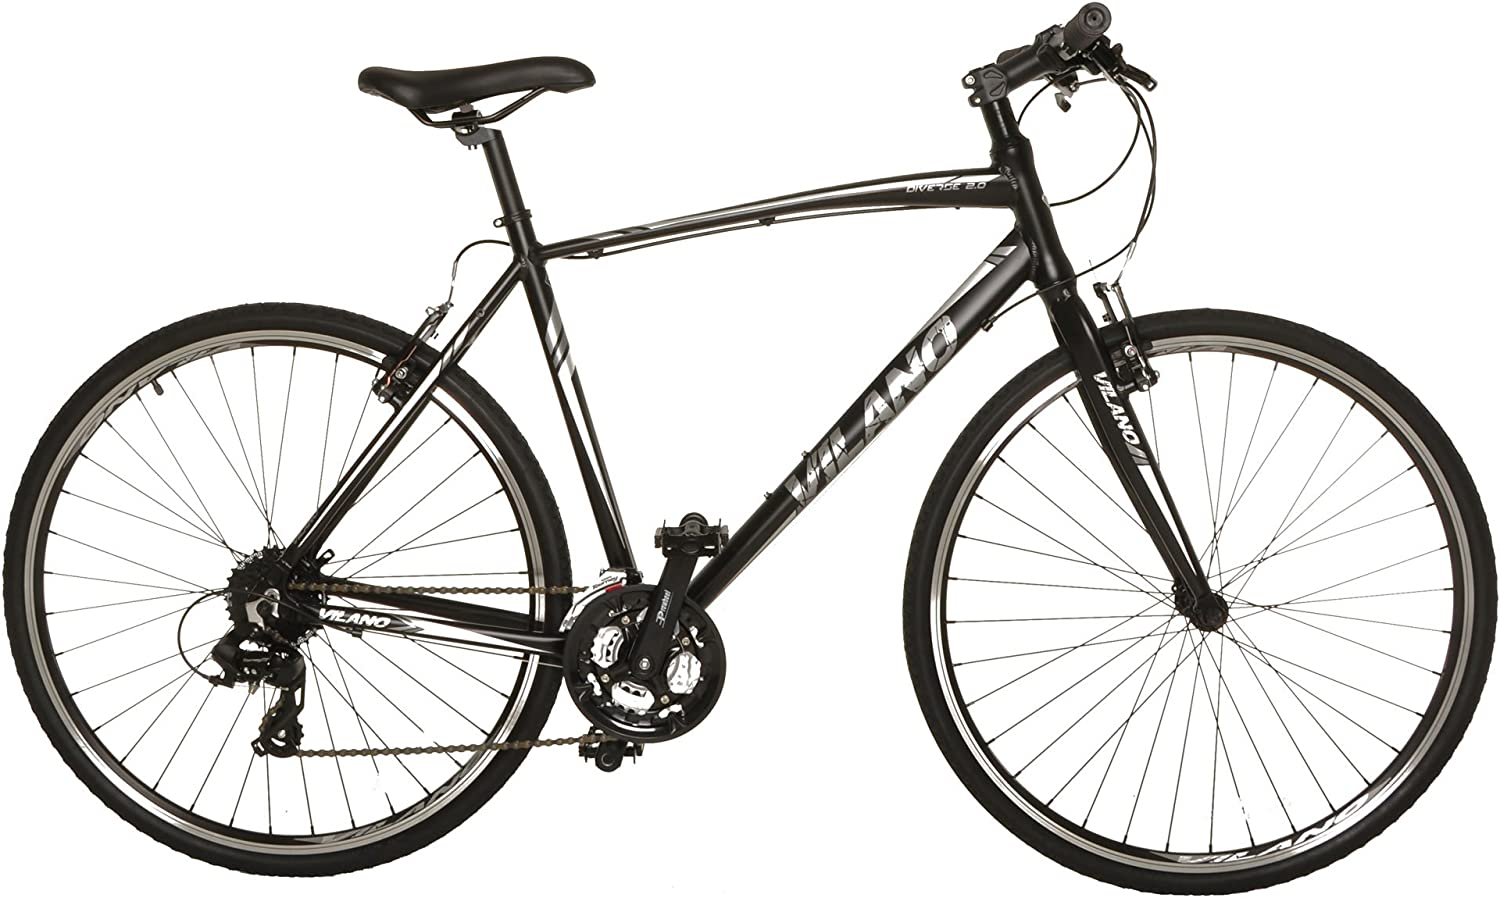 """Vilano Diverse 2.0 Performance Hybrid Bike 24 Speed Road Bike 700c""Vilano Bikes Review"